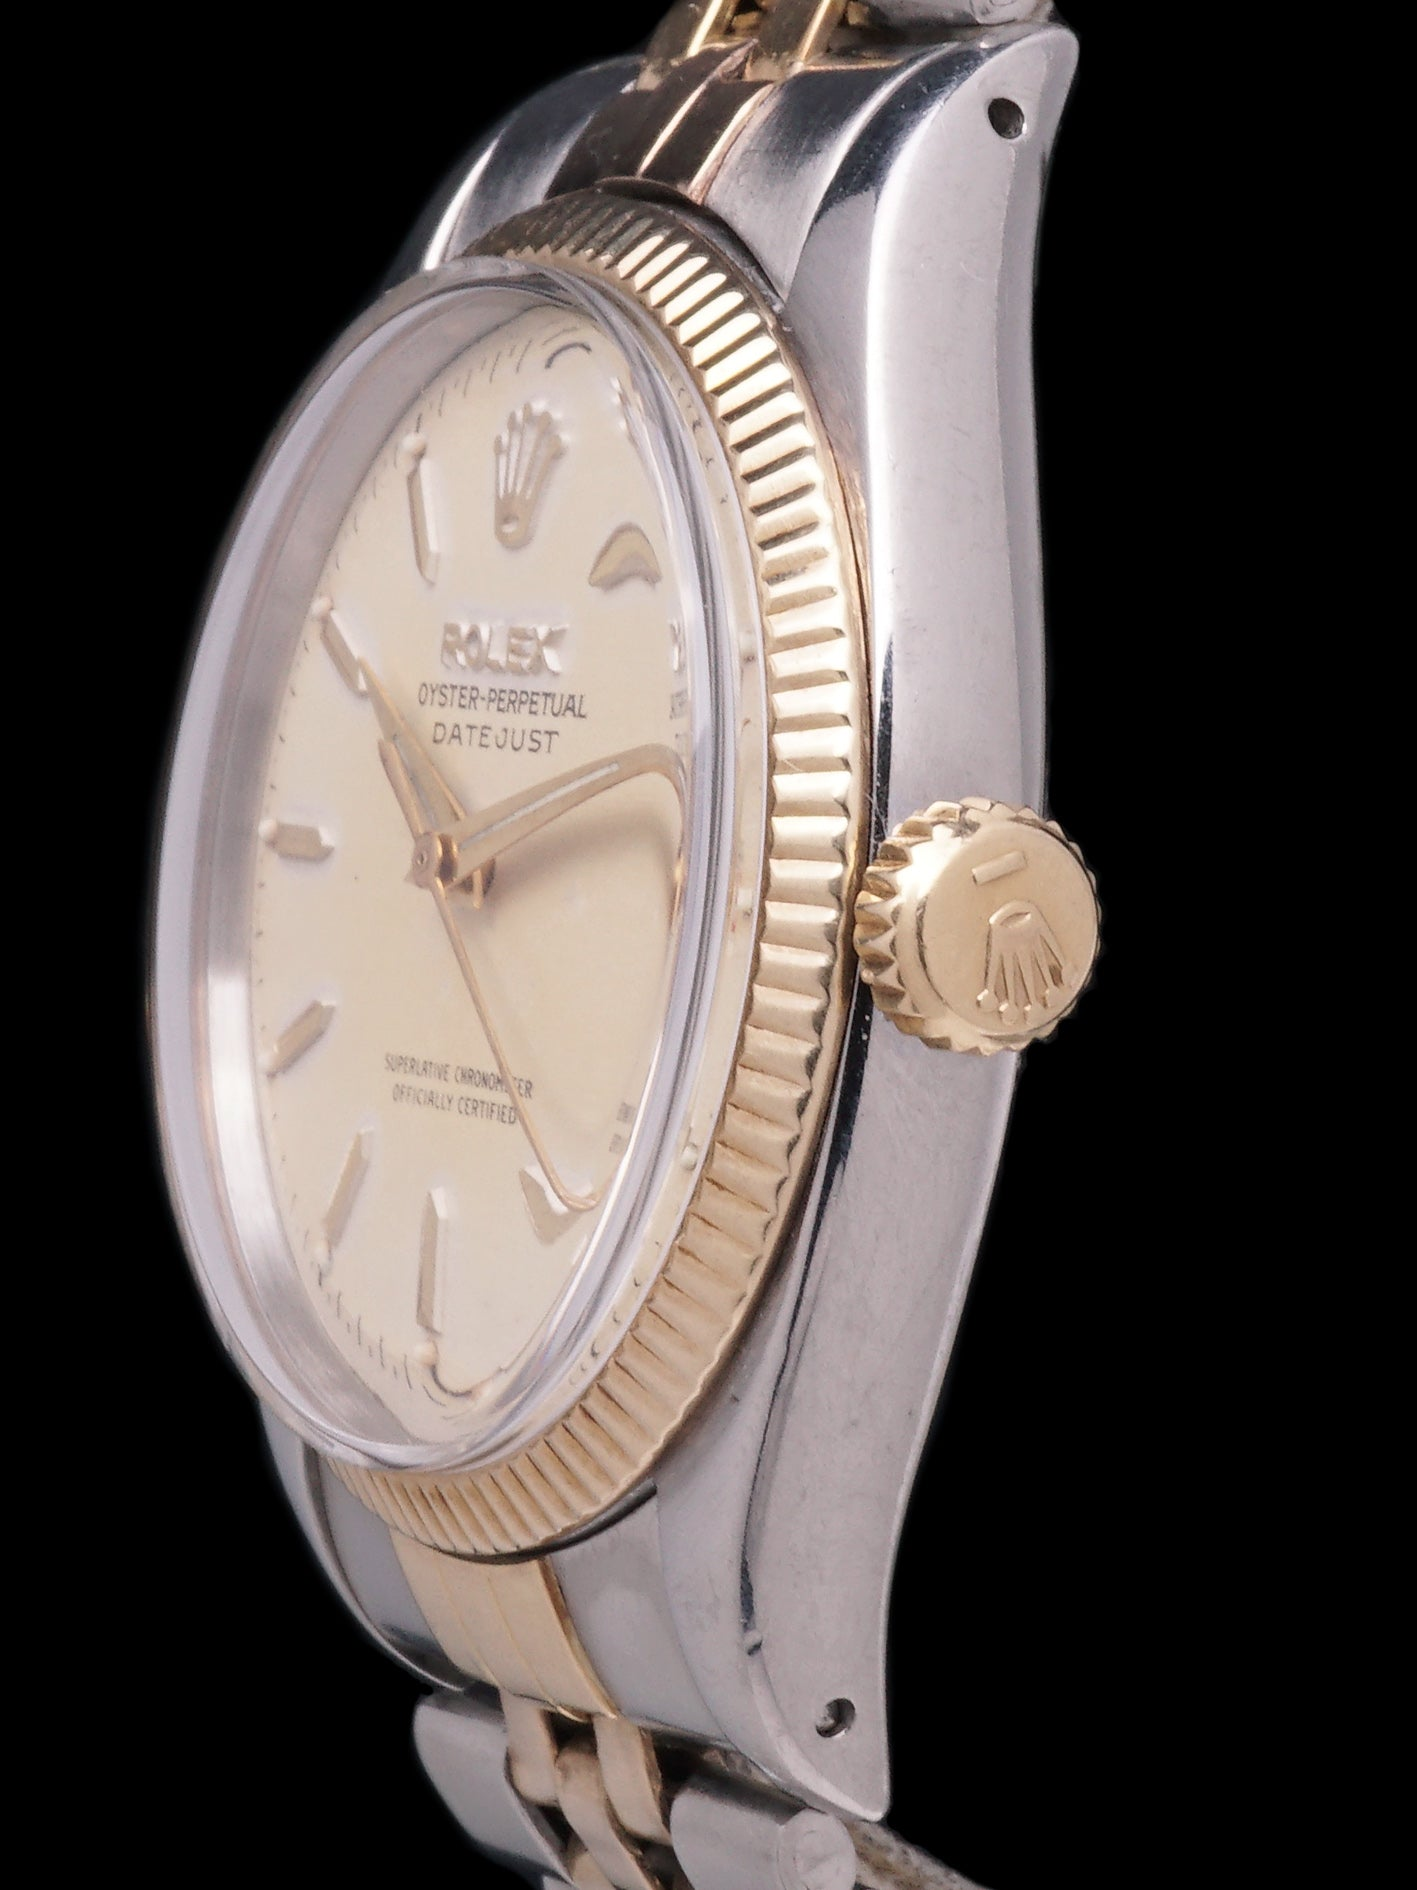 1957 Rolex Two-Tone Datejust (Ref. 6605) W/ Roulette Date Wheel